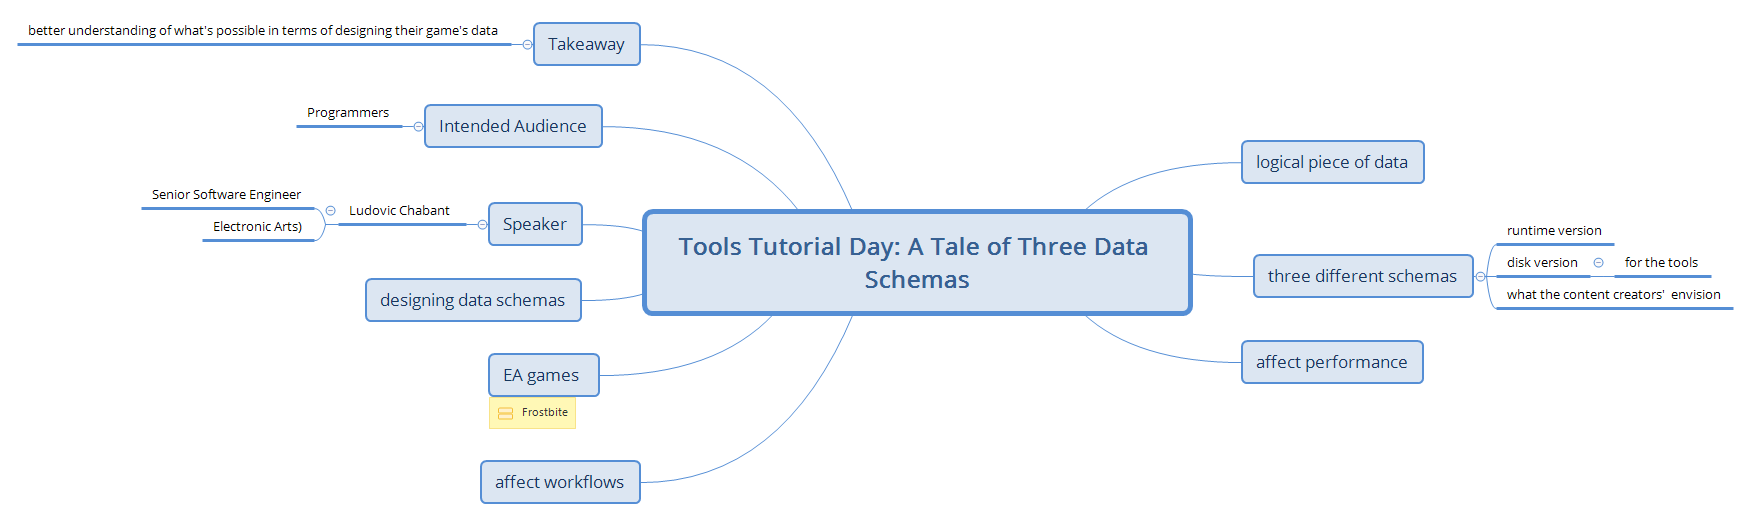 Test Notes for: Tools Tutorial Day: A Tale of Three Data Schemas